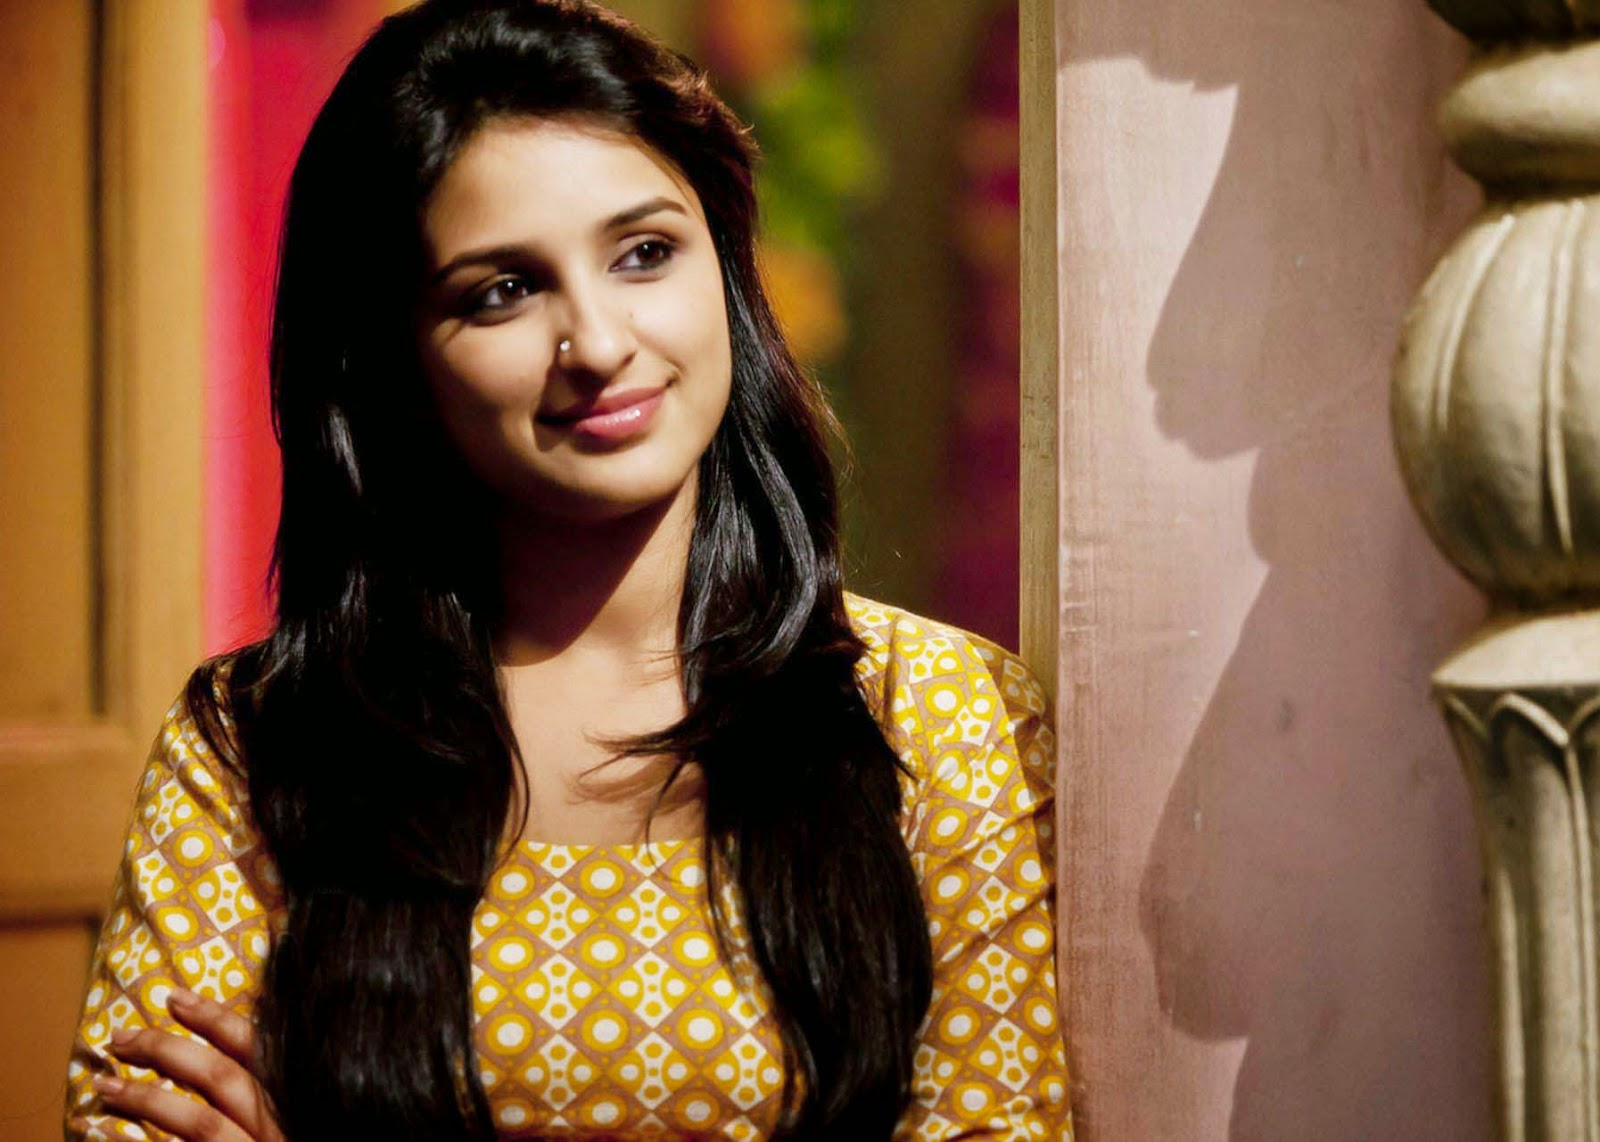 Wallpapers Poster, Photo, Image 3 - Parineeti Chopra Smiley Look Daawat-e-Ishq